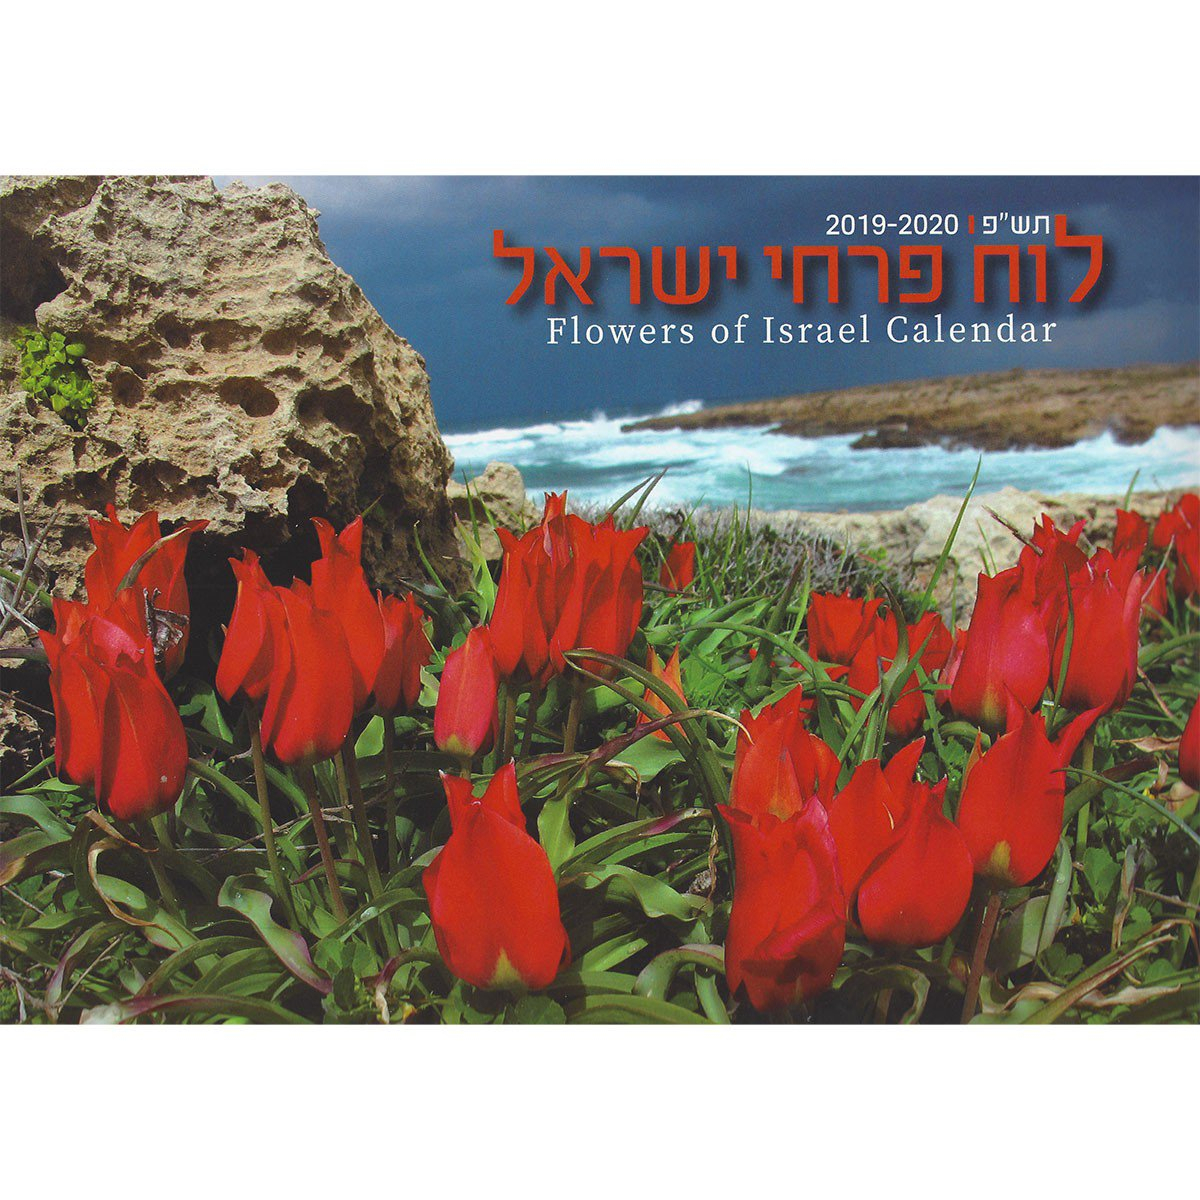 Full-Size Flowers Of Israel Wall Calendar 5780 - 2019-20 regarding How To Create A Jweish Calender In One Page For 2019-2020